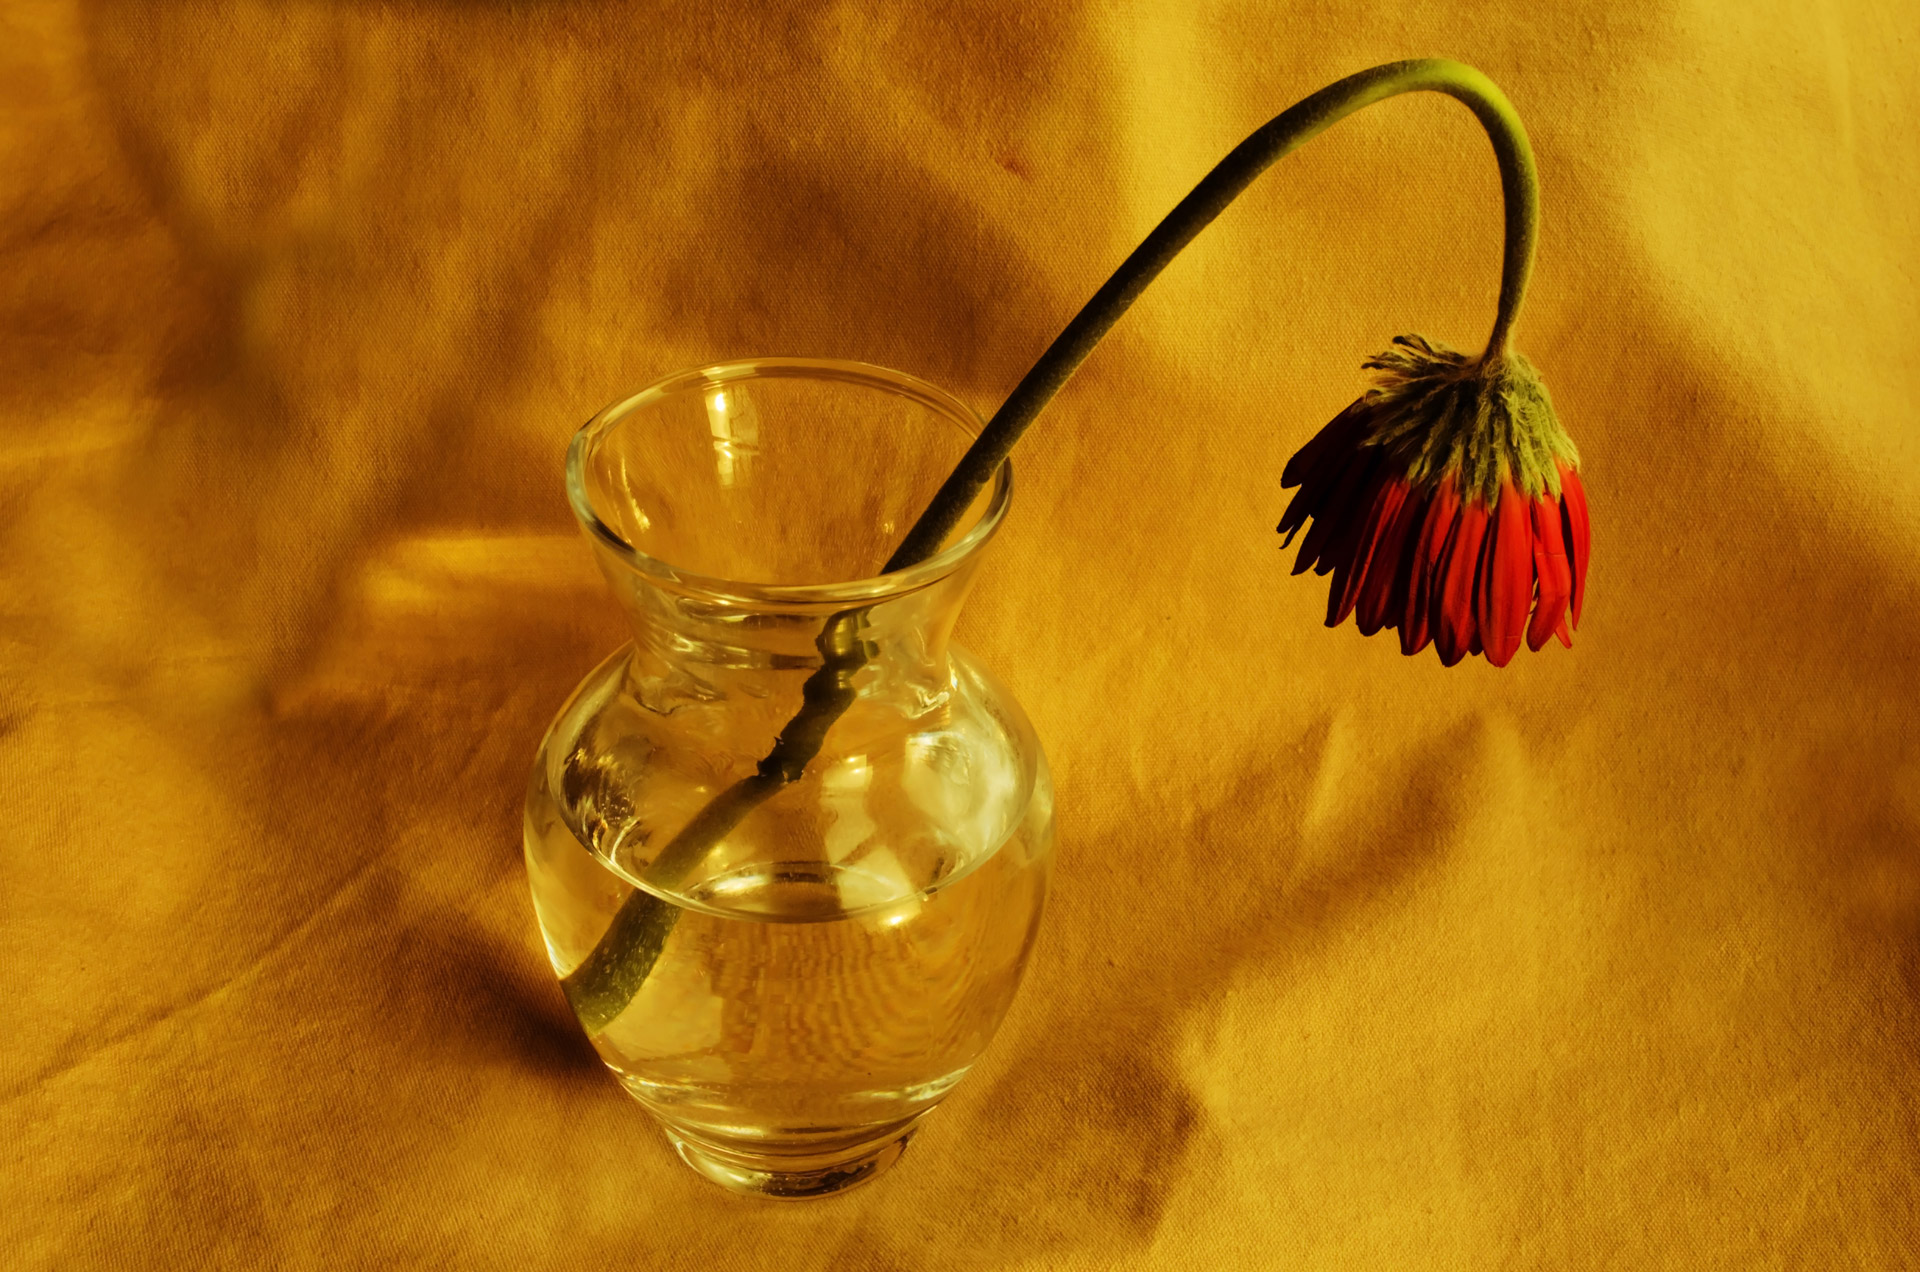 Withered Flower Free Stock Photo - Public Domain Pictures